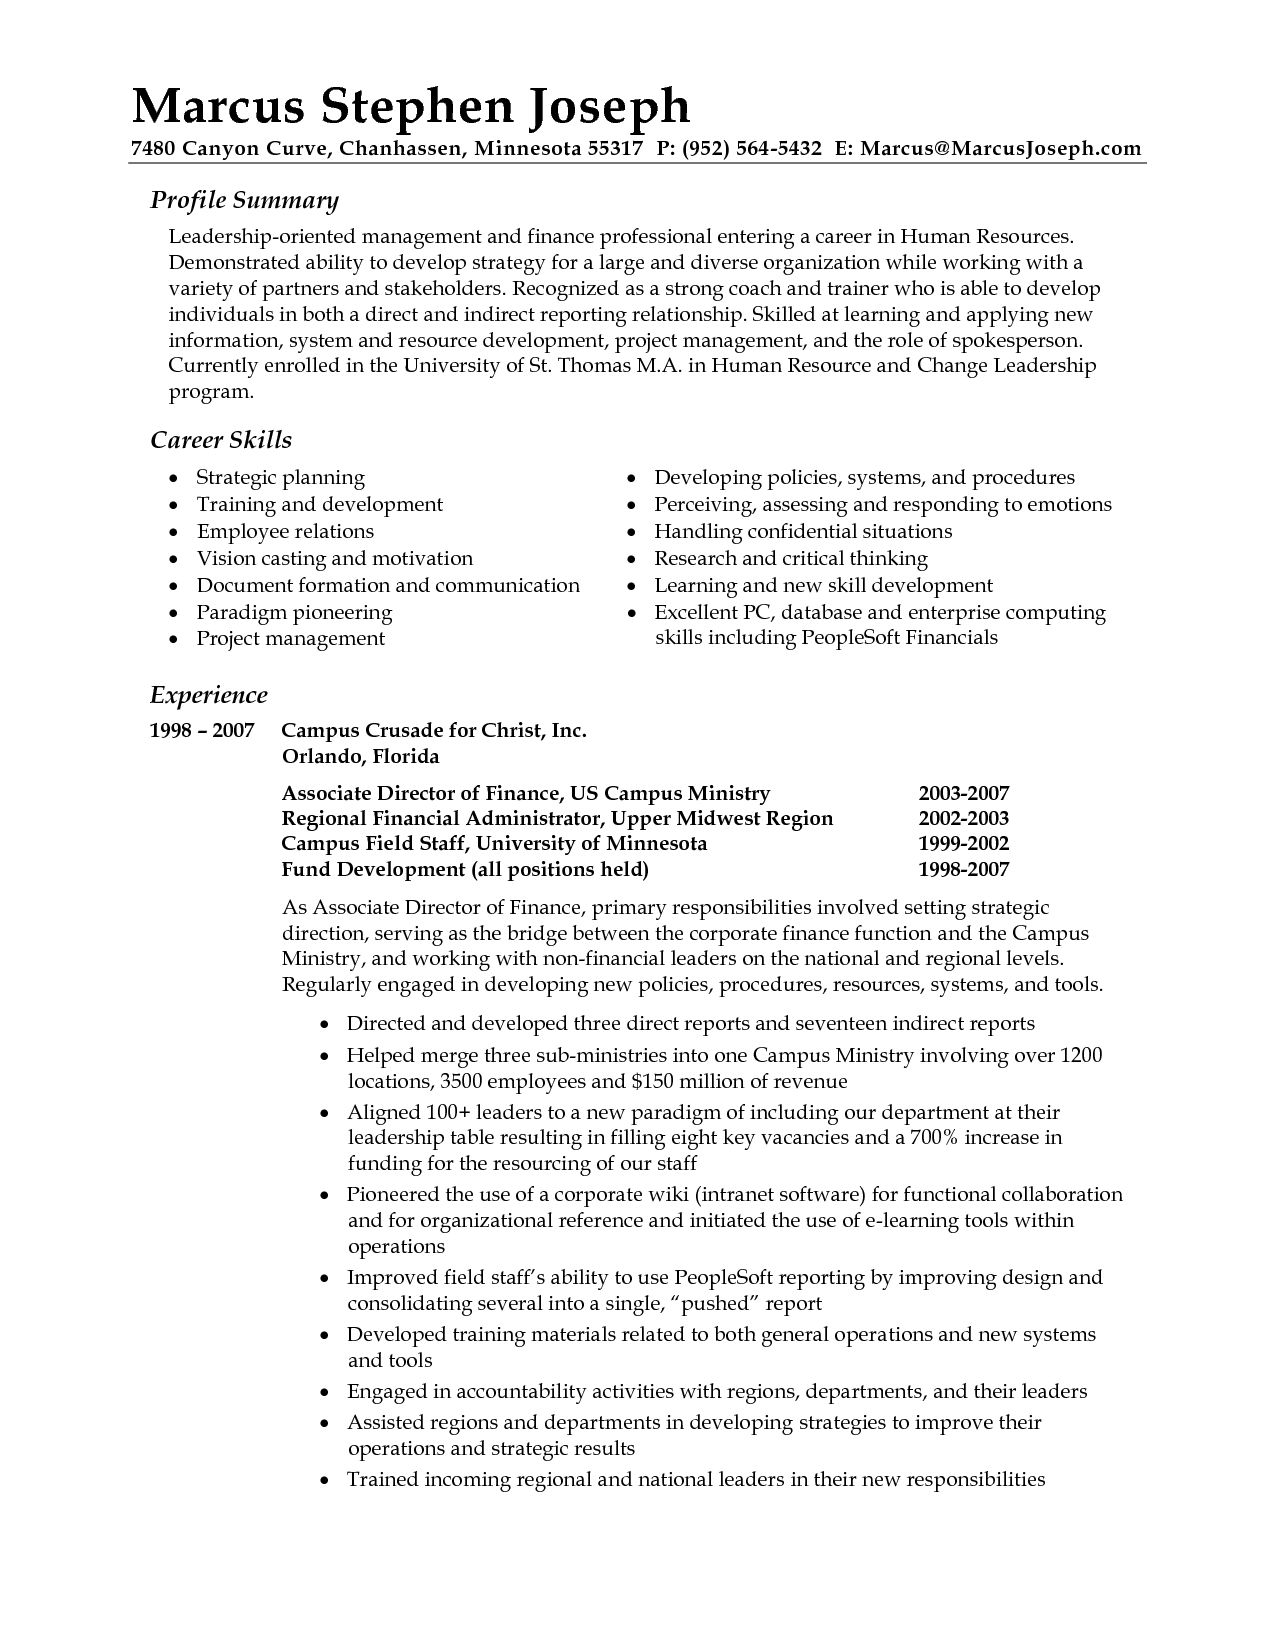 professional summary resume examples career statement samples for students objective Resume Resume Summary Samples For Students